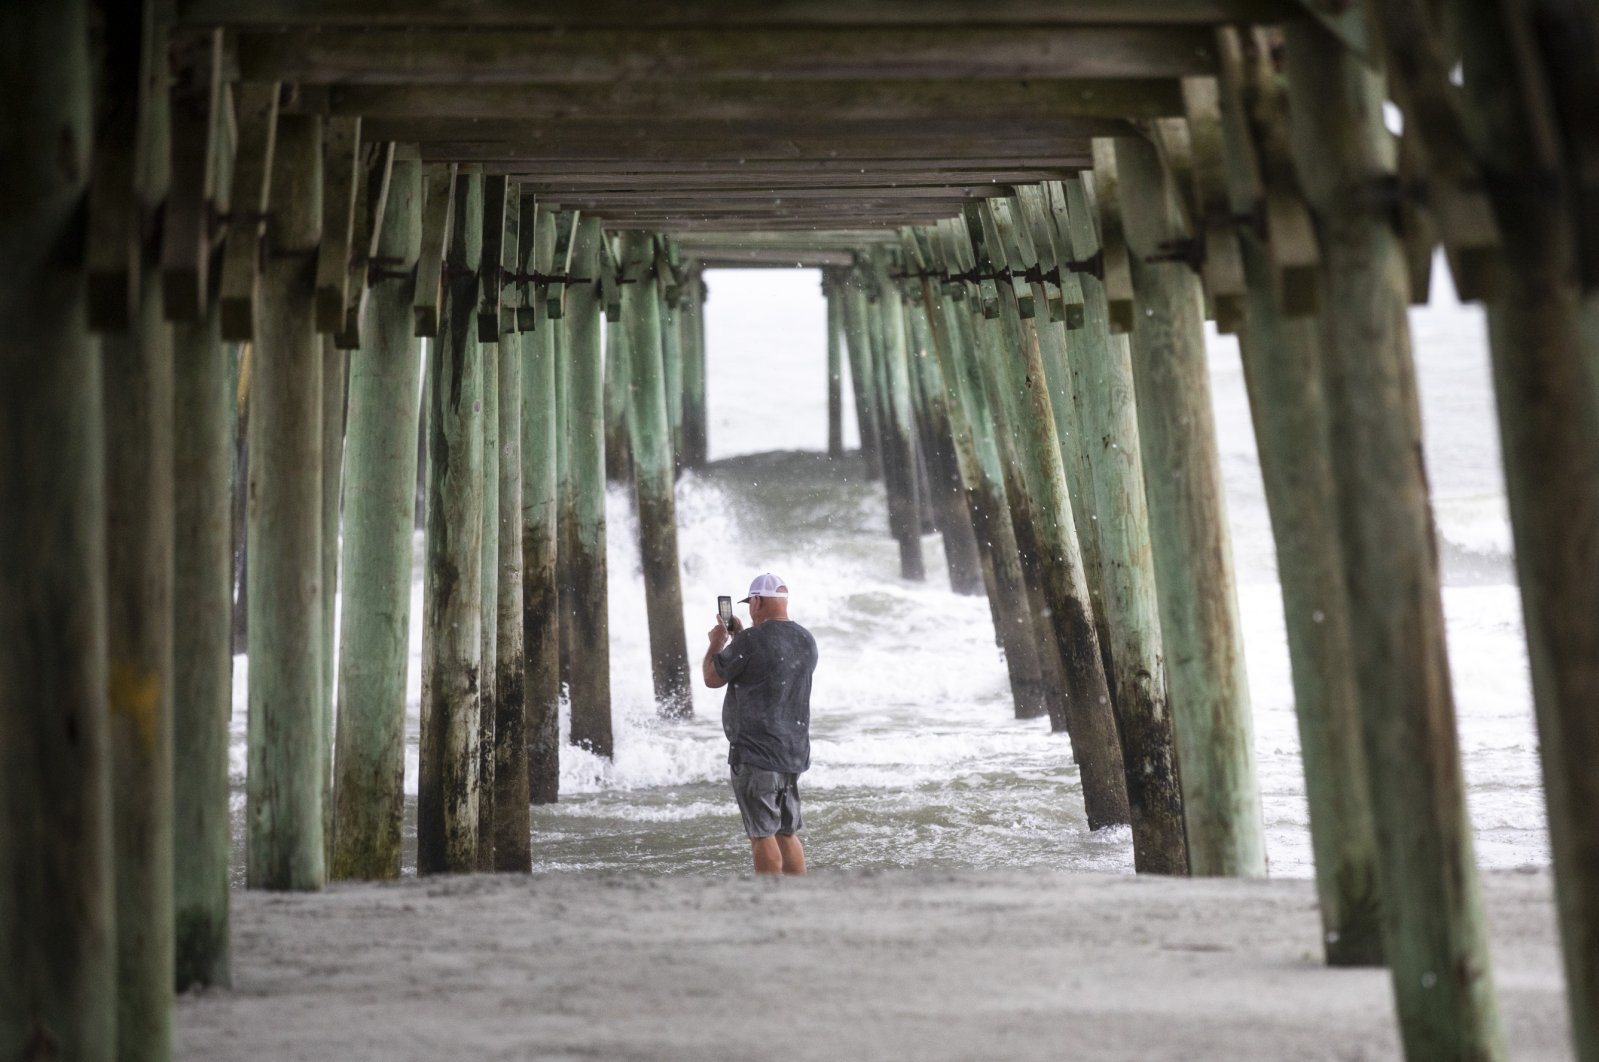 A person stands under the pier in Garden City, S.C., Monday, Aug. 3, 2020, as Isaias approached the Carolinas.  (The Sun News via AP)